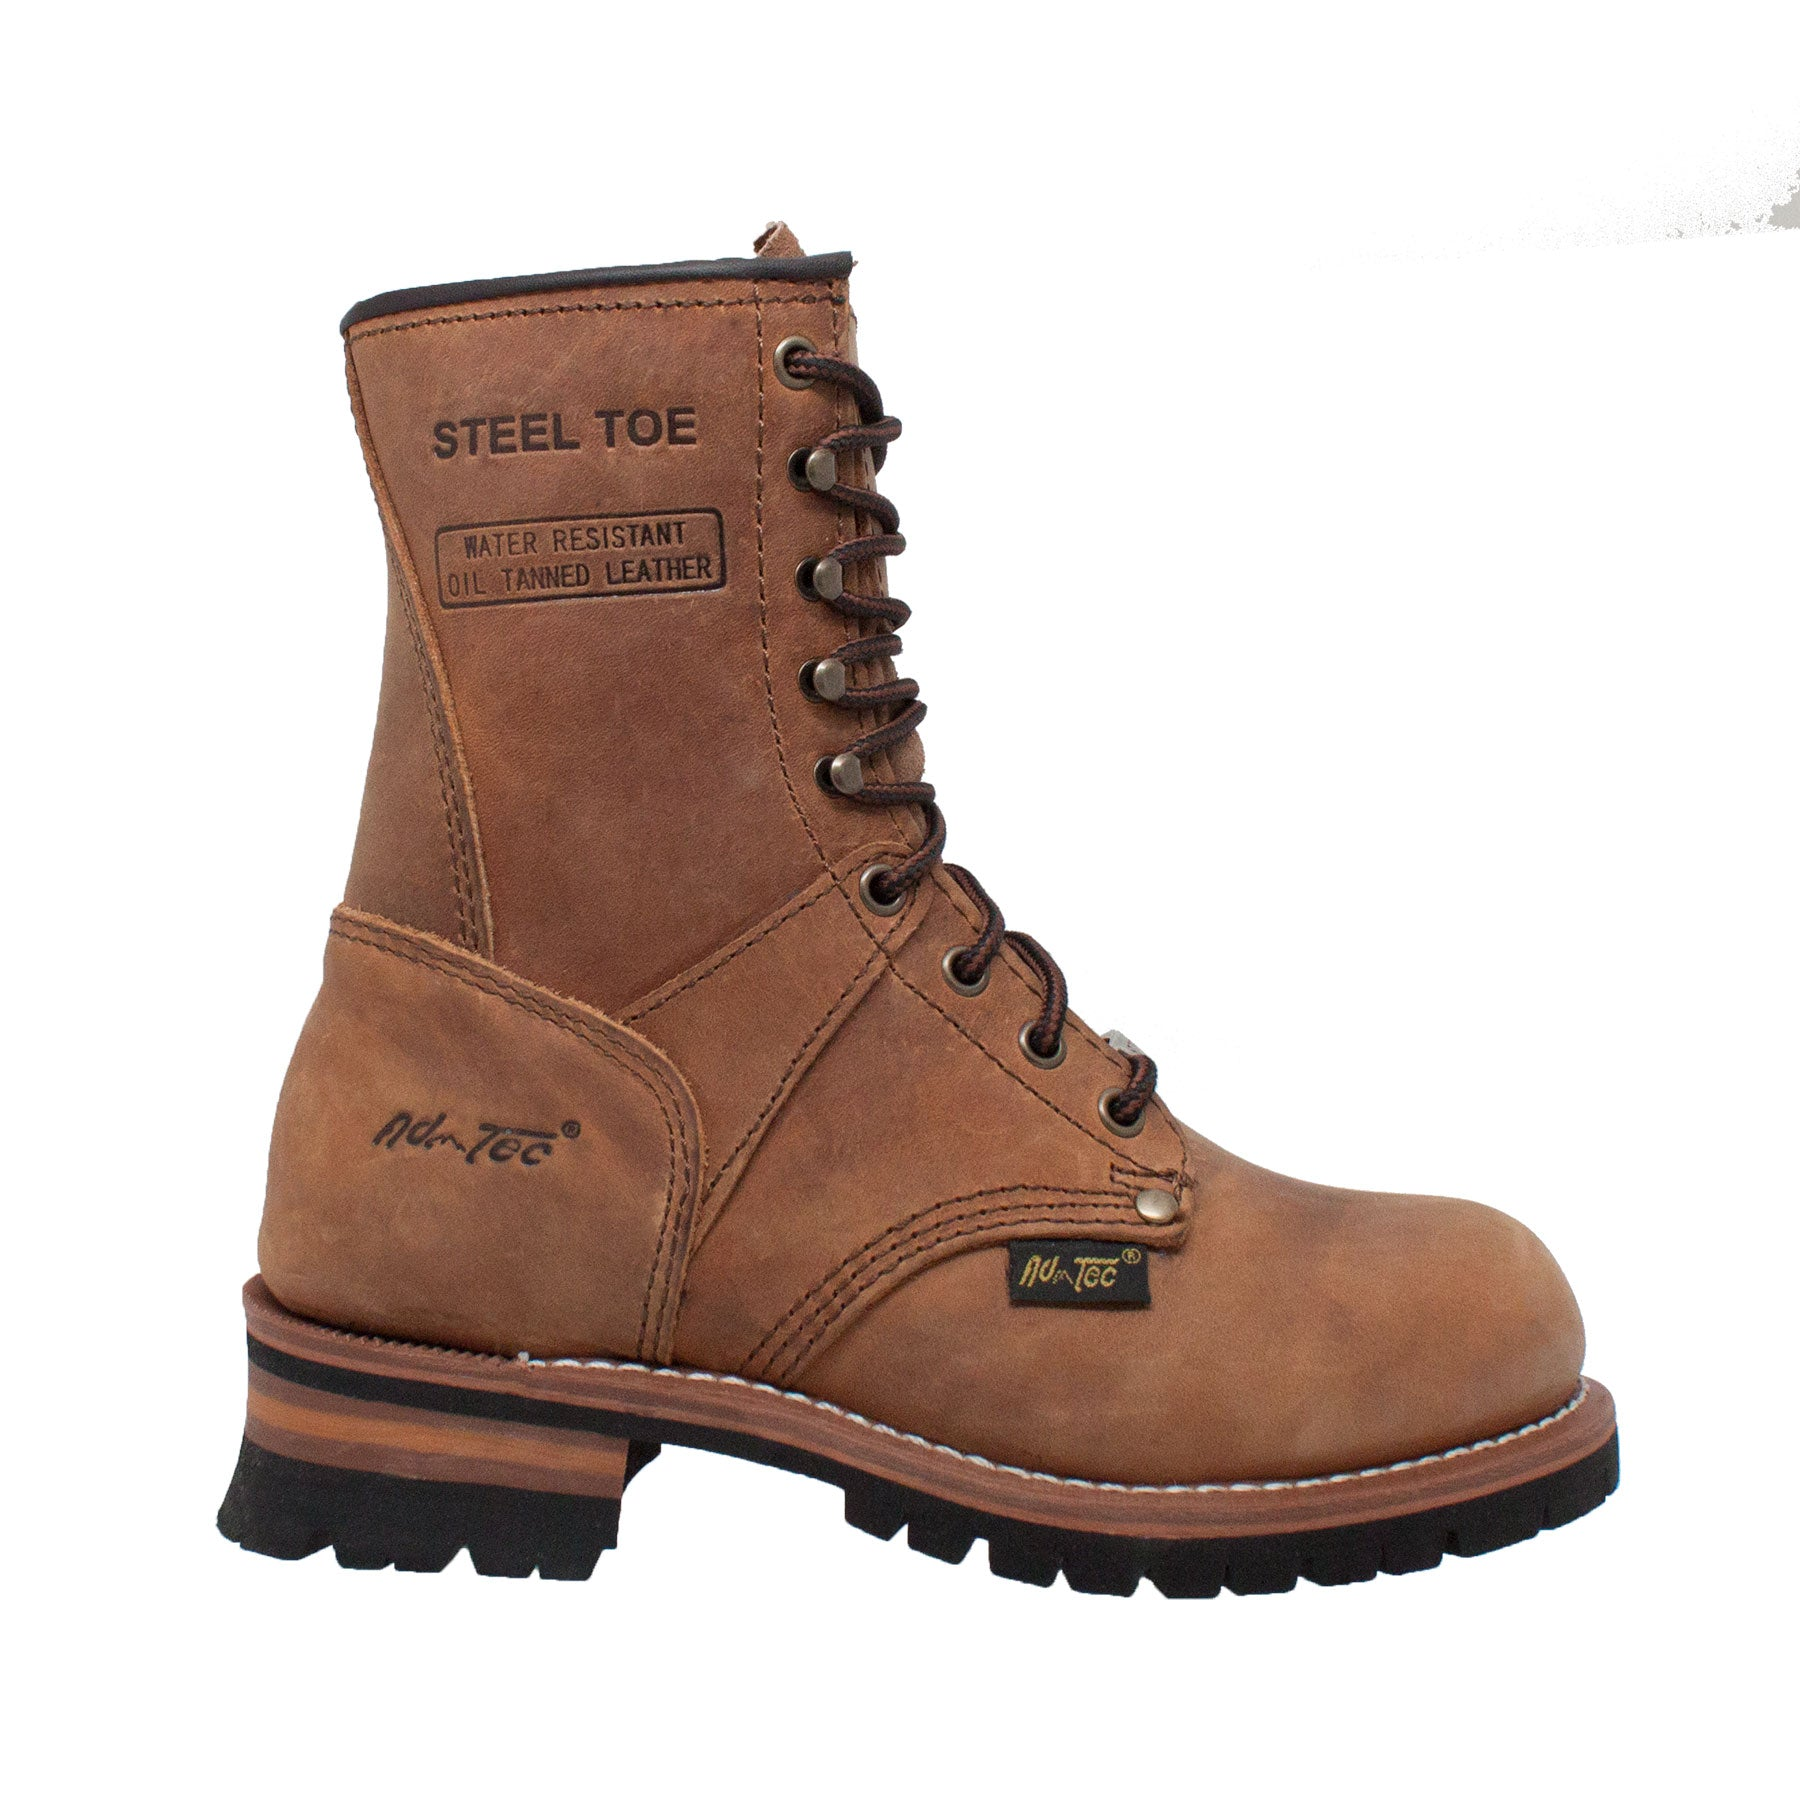 AdTec Womens Steel Toe Construction Boots Work & Safety Industrial & Construction